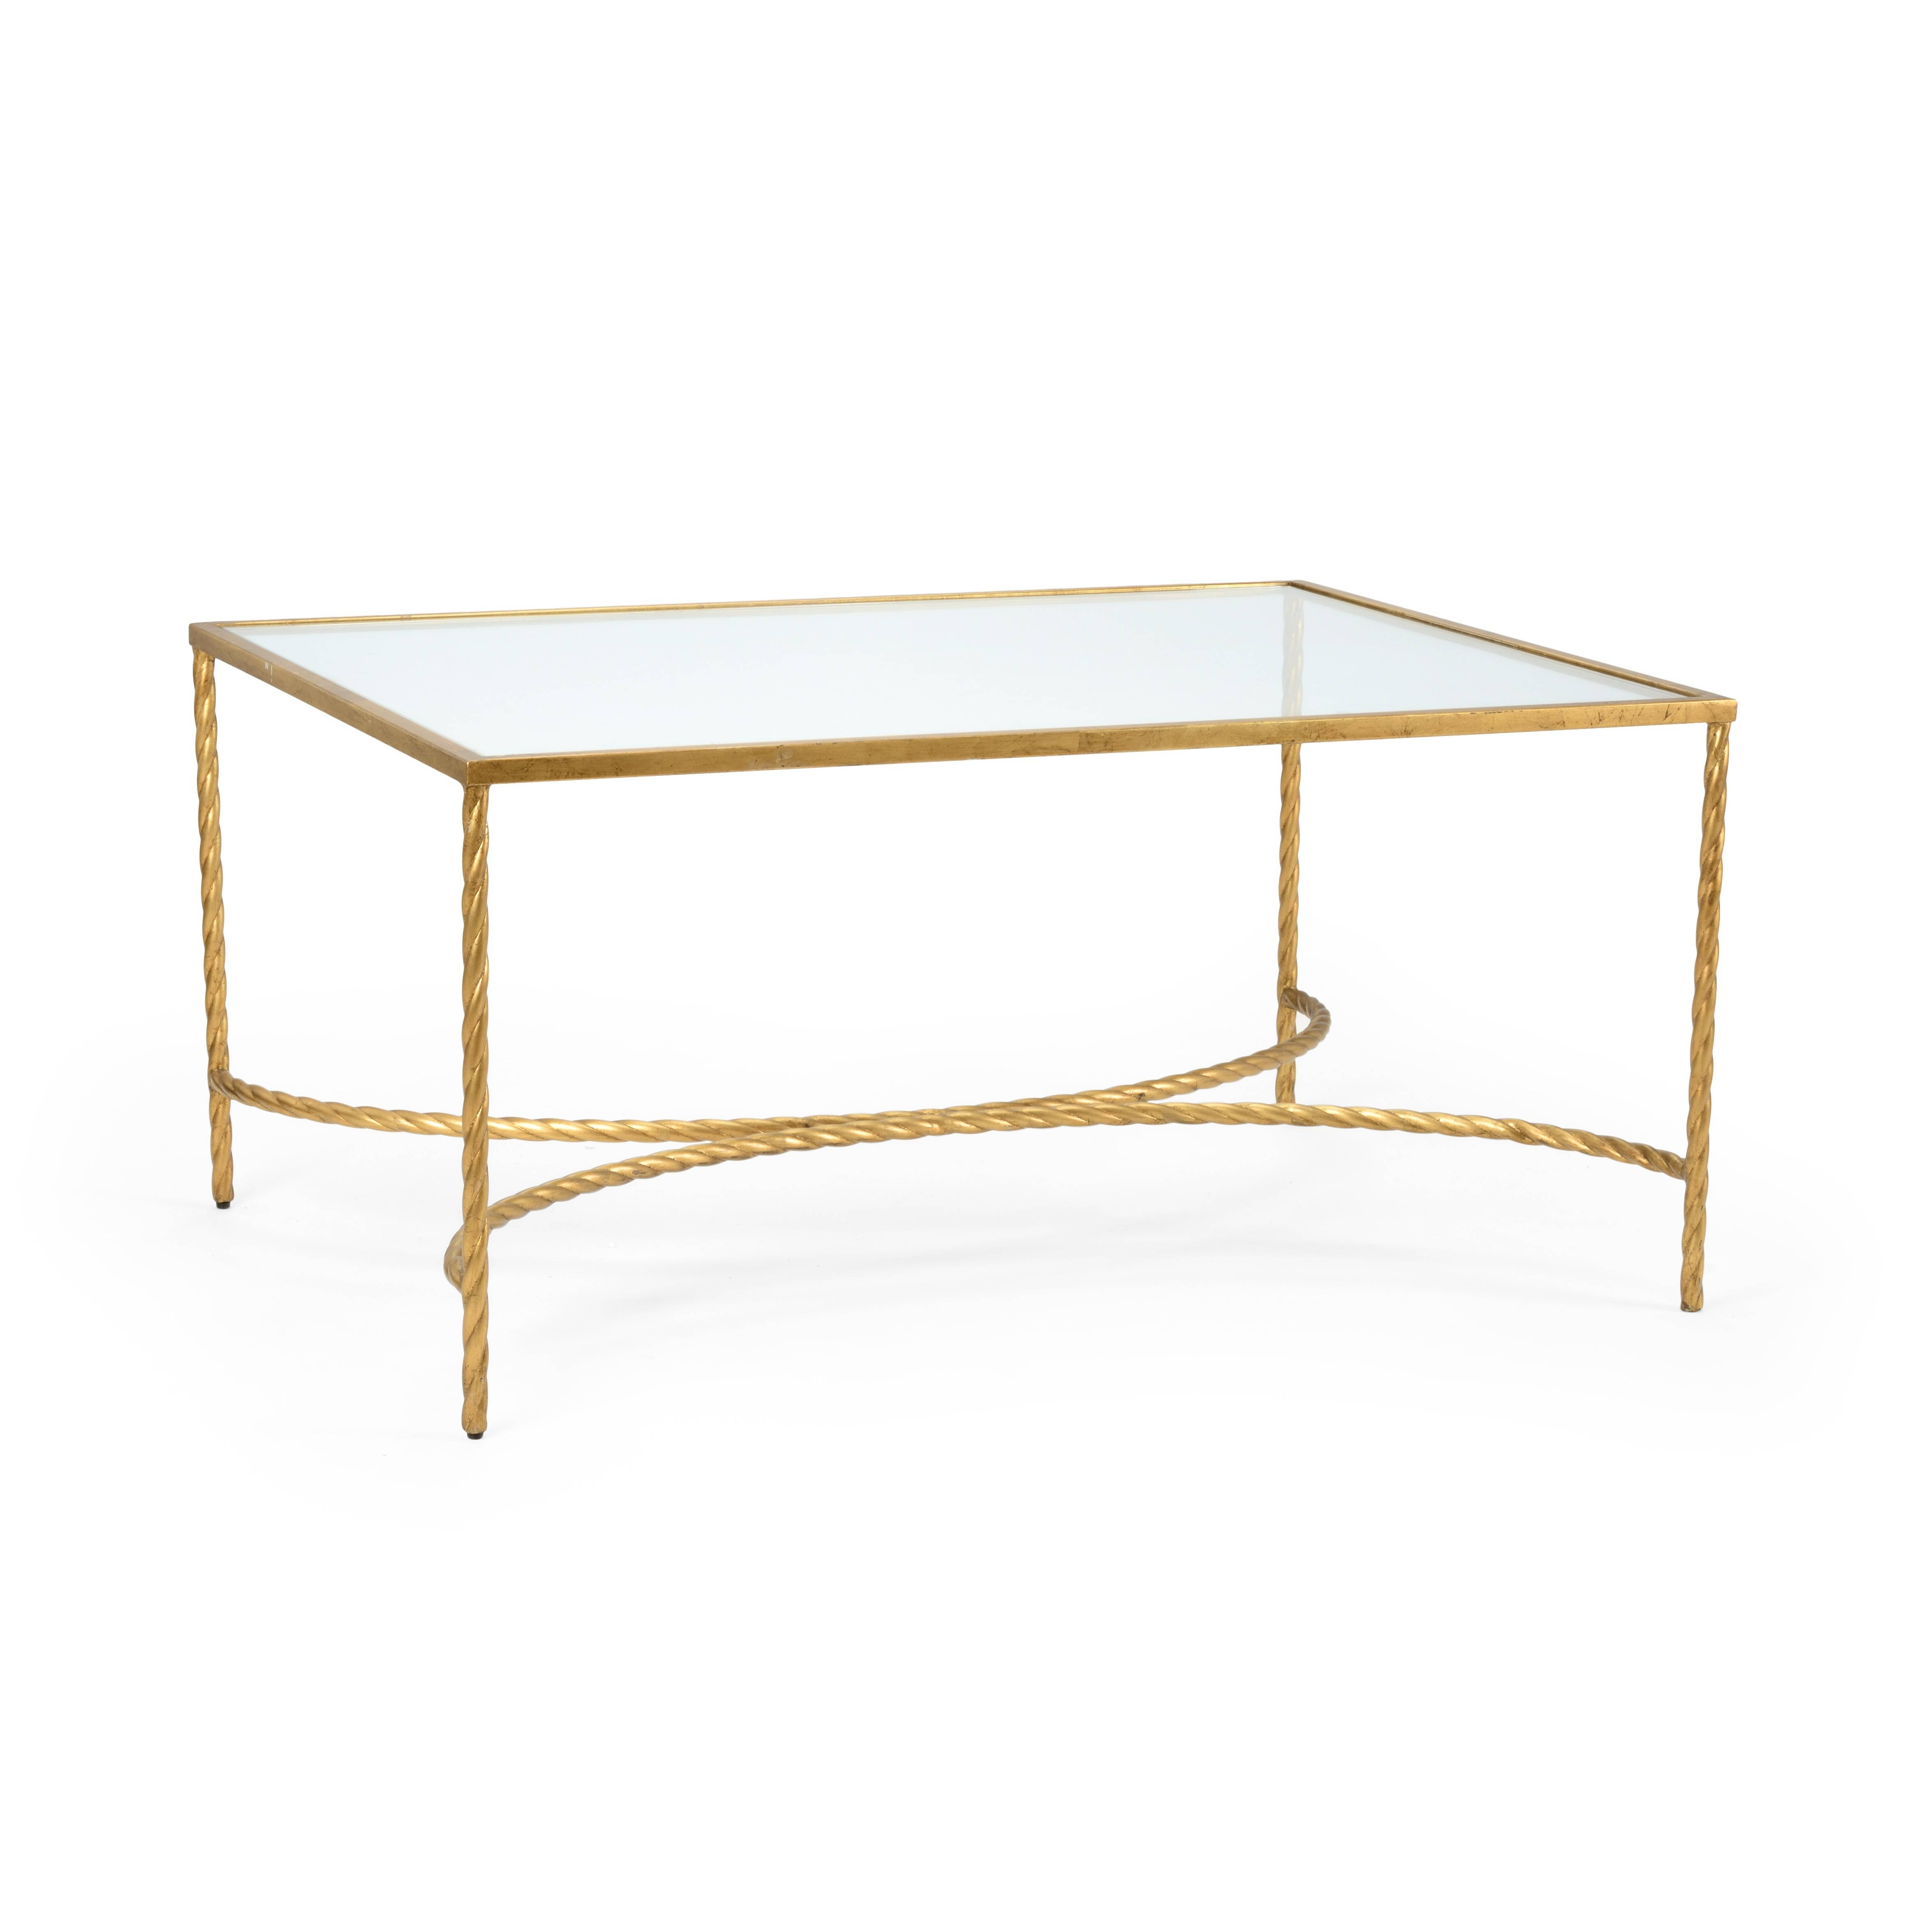 The Well Appointed House - Luxuries For The Home - The Well for Glass Gold Coffee Tables (Image 27 of 30)